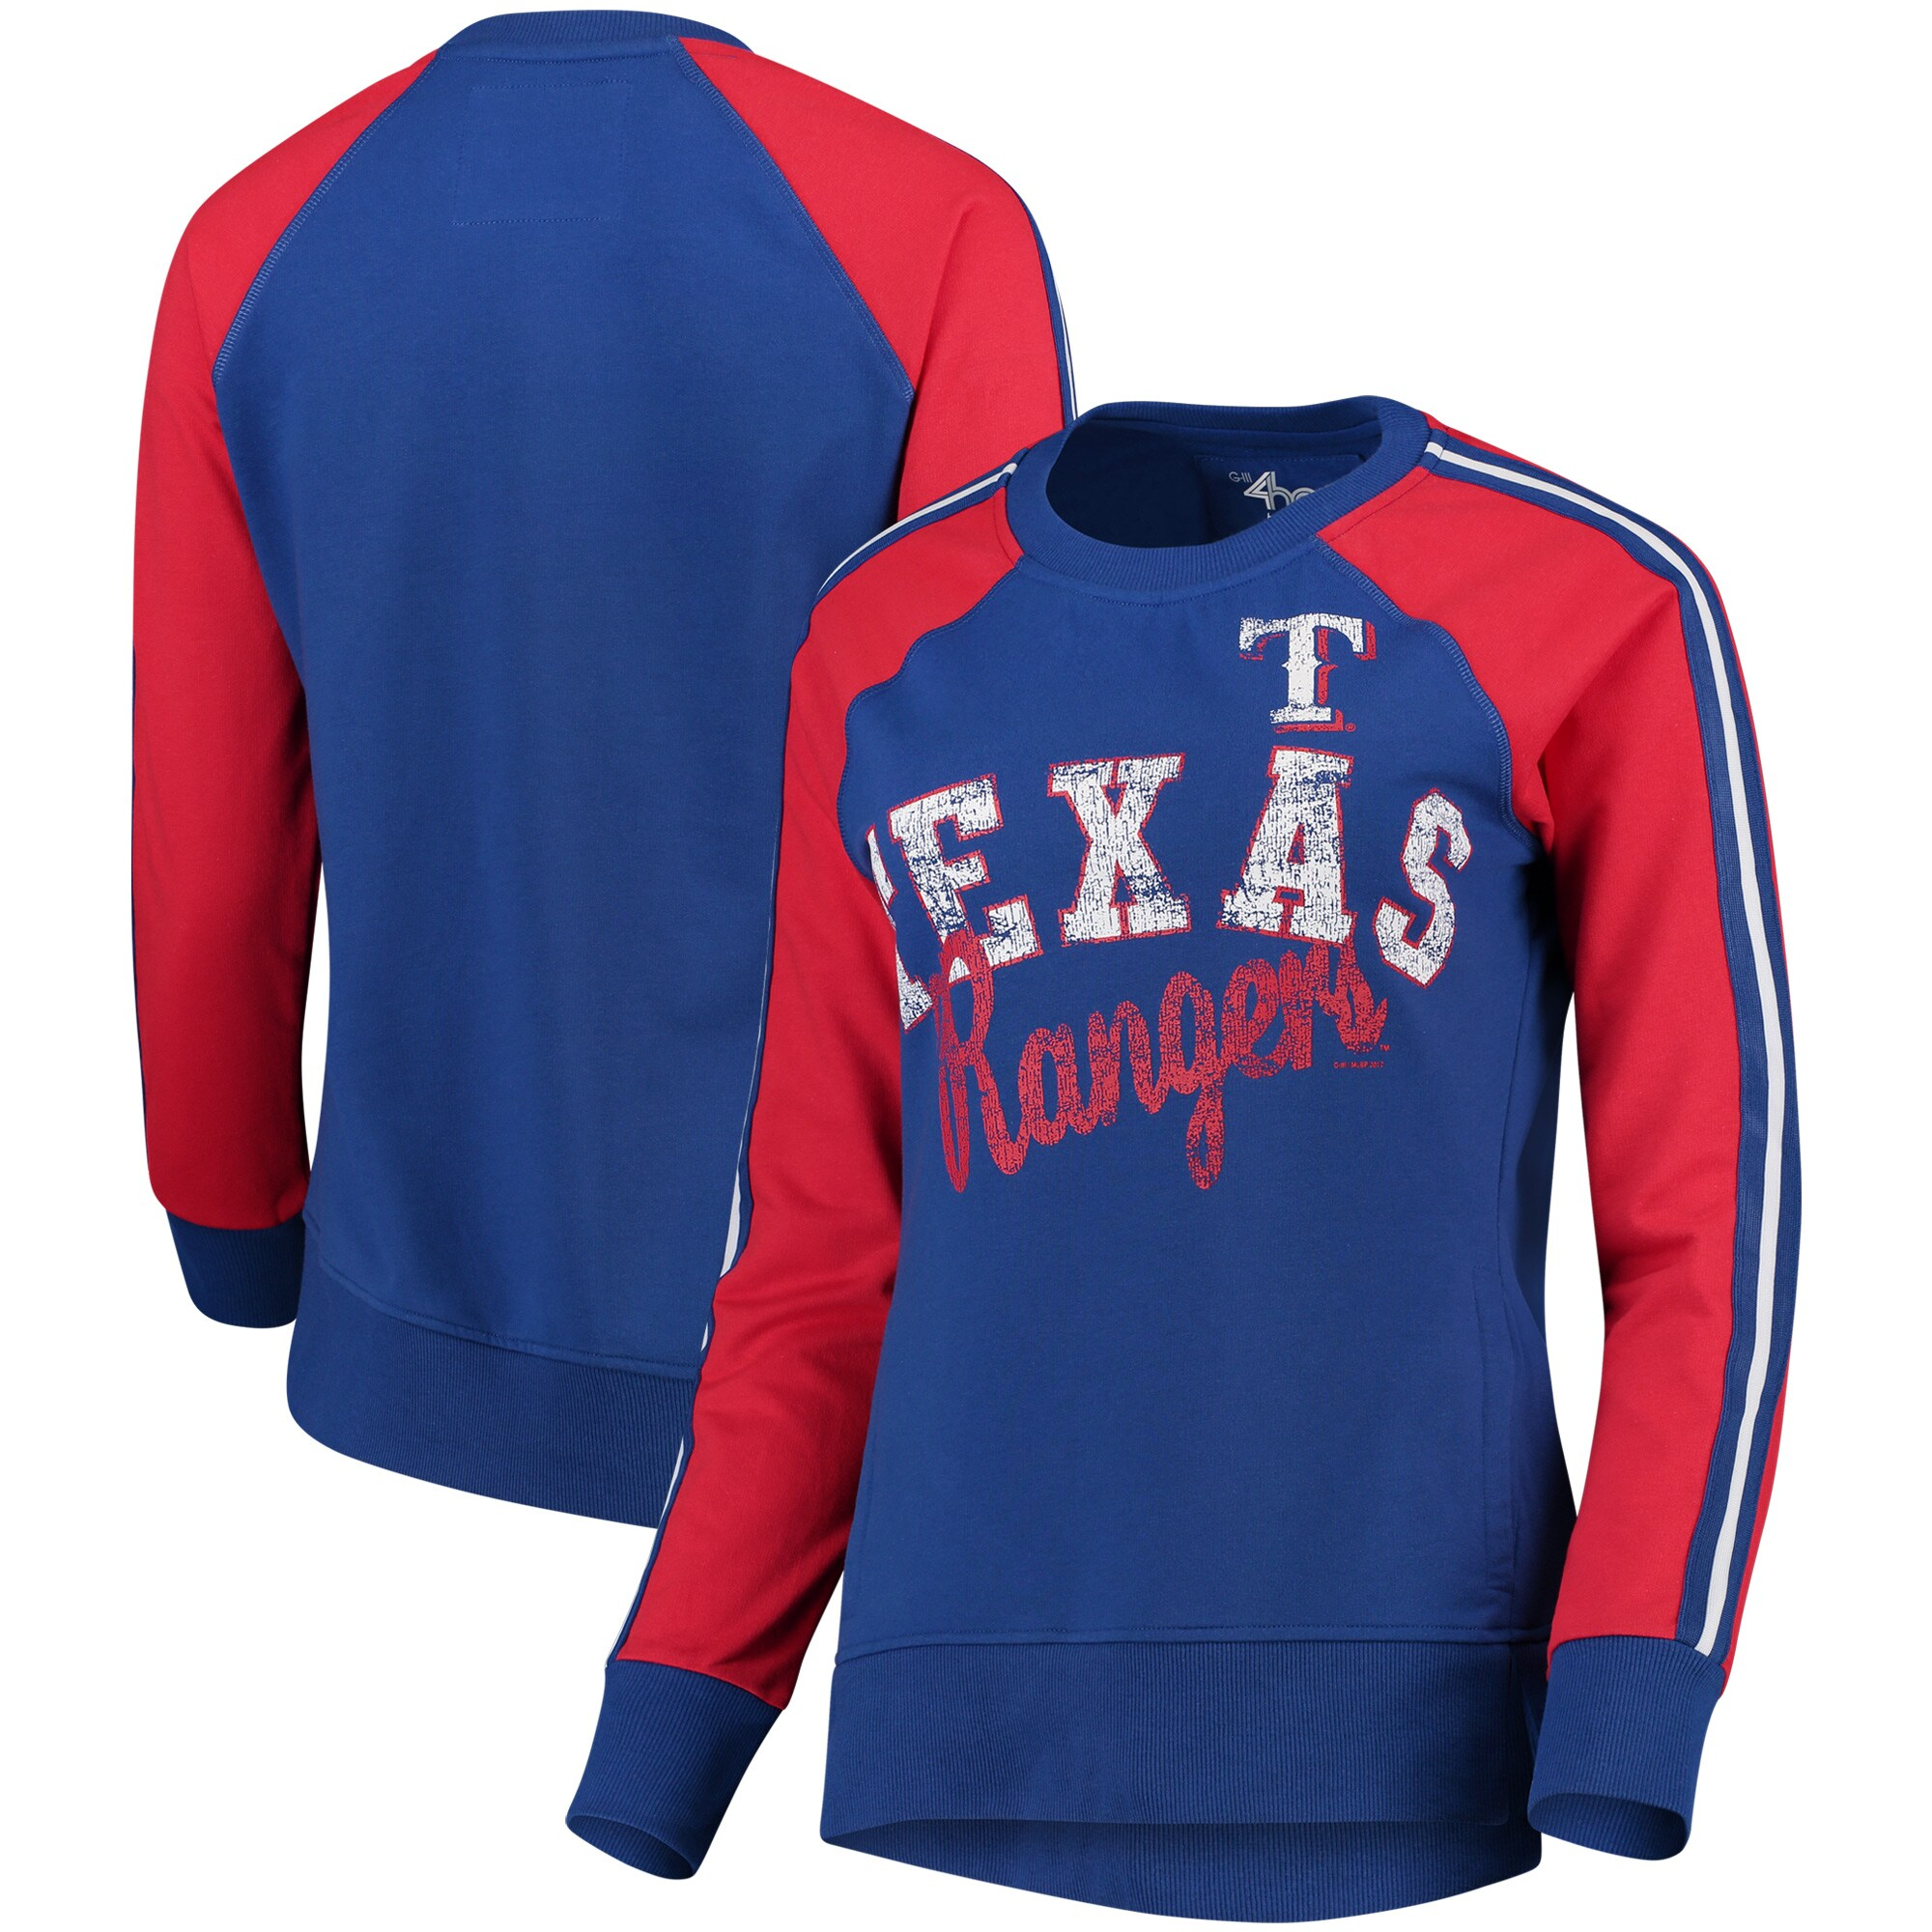 Texas Rangers G-III 4Her by Carl Banks Women's Perfect Pitch Pullover Sweatshirt - Royal/Red